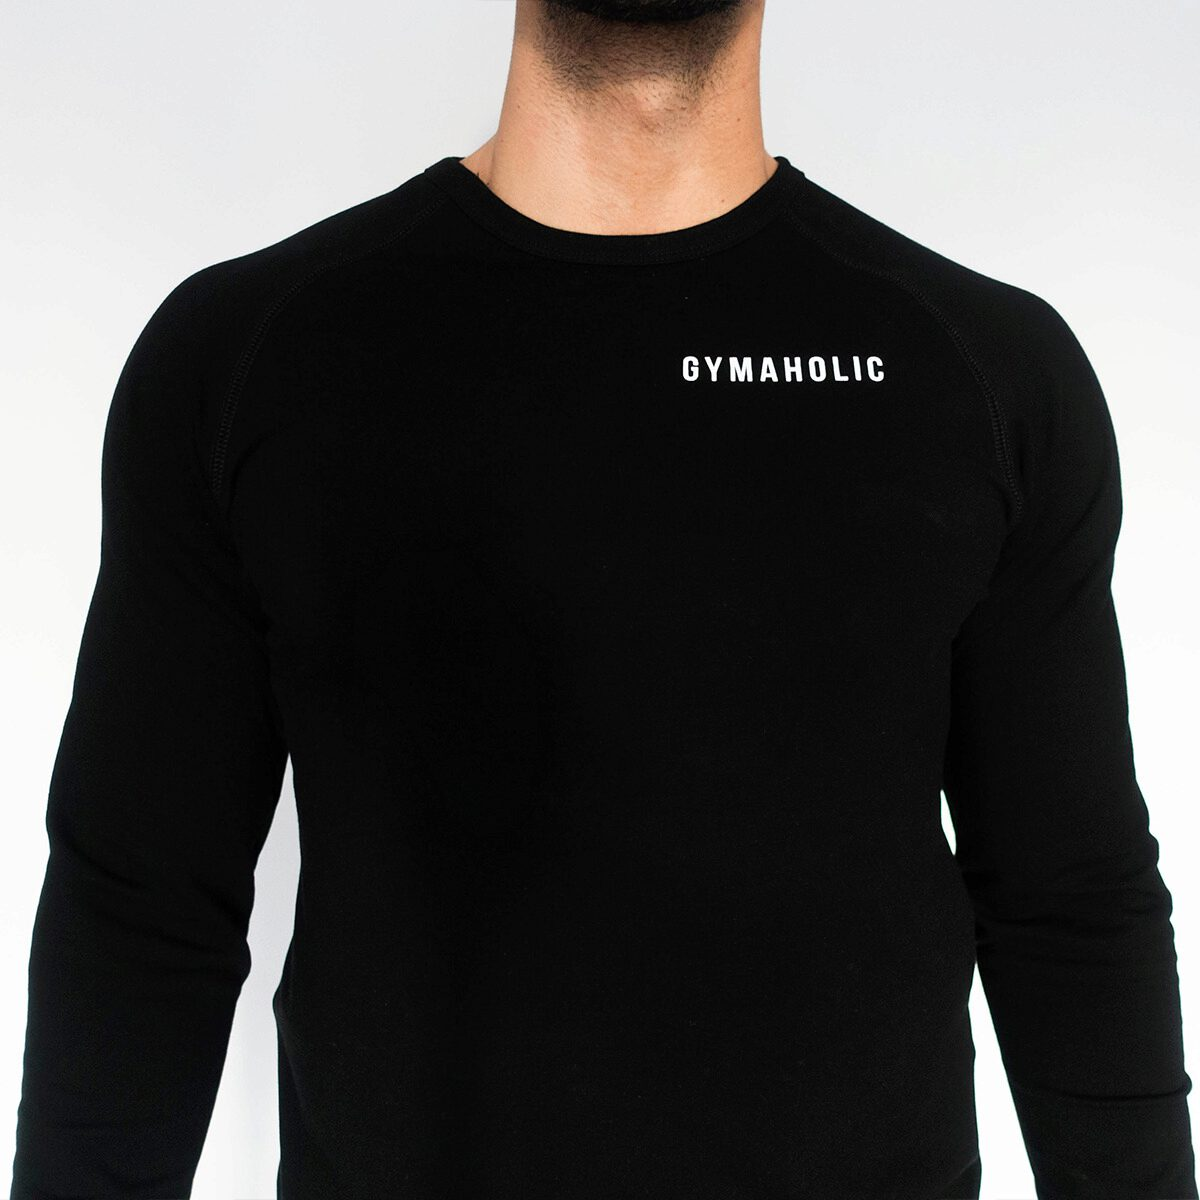 The Gymaholic Sweatshirt can be used in and out the gym with confidence.